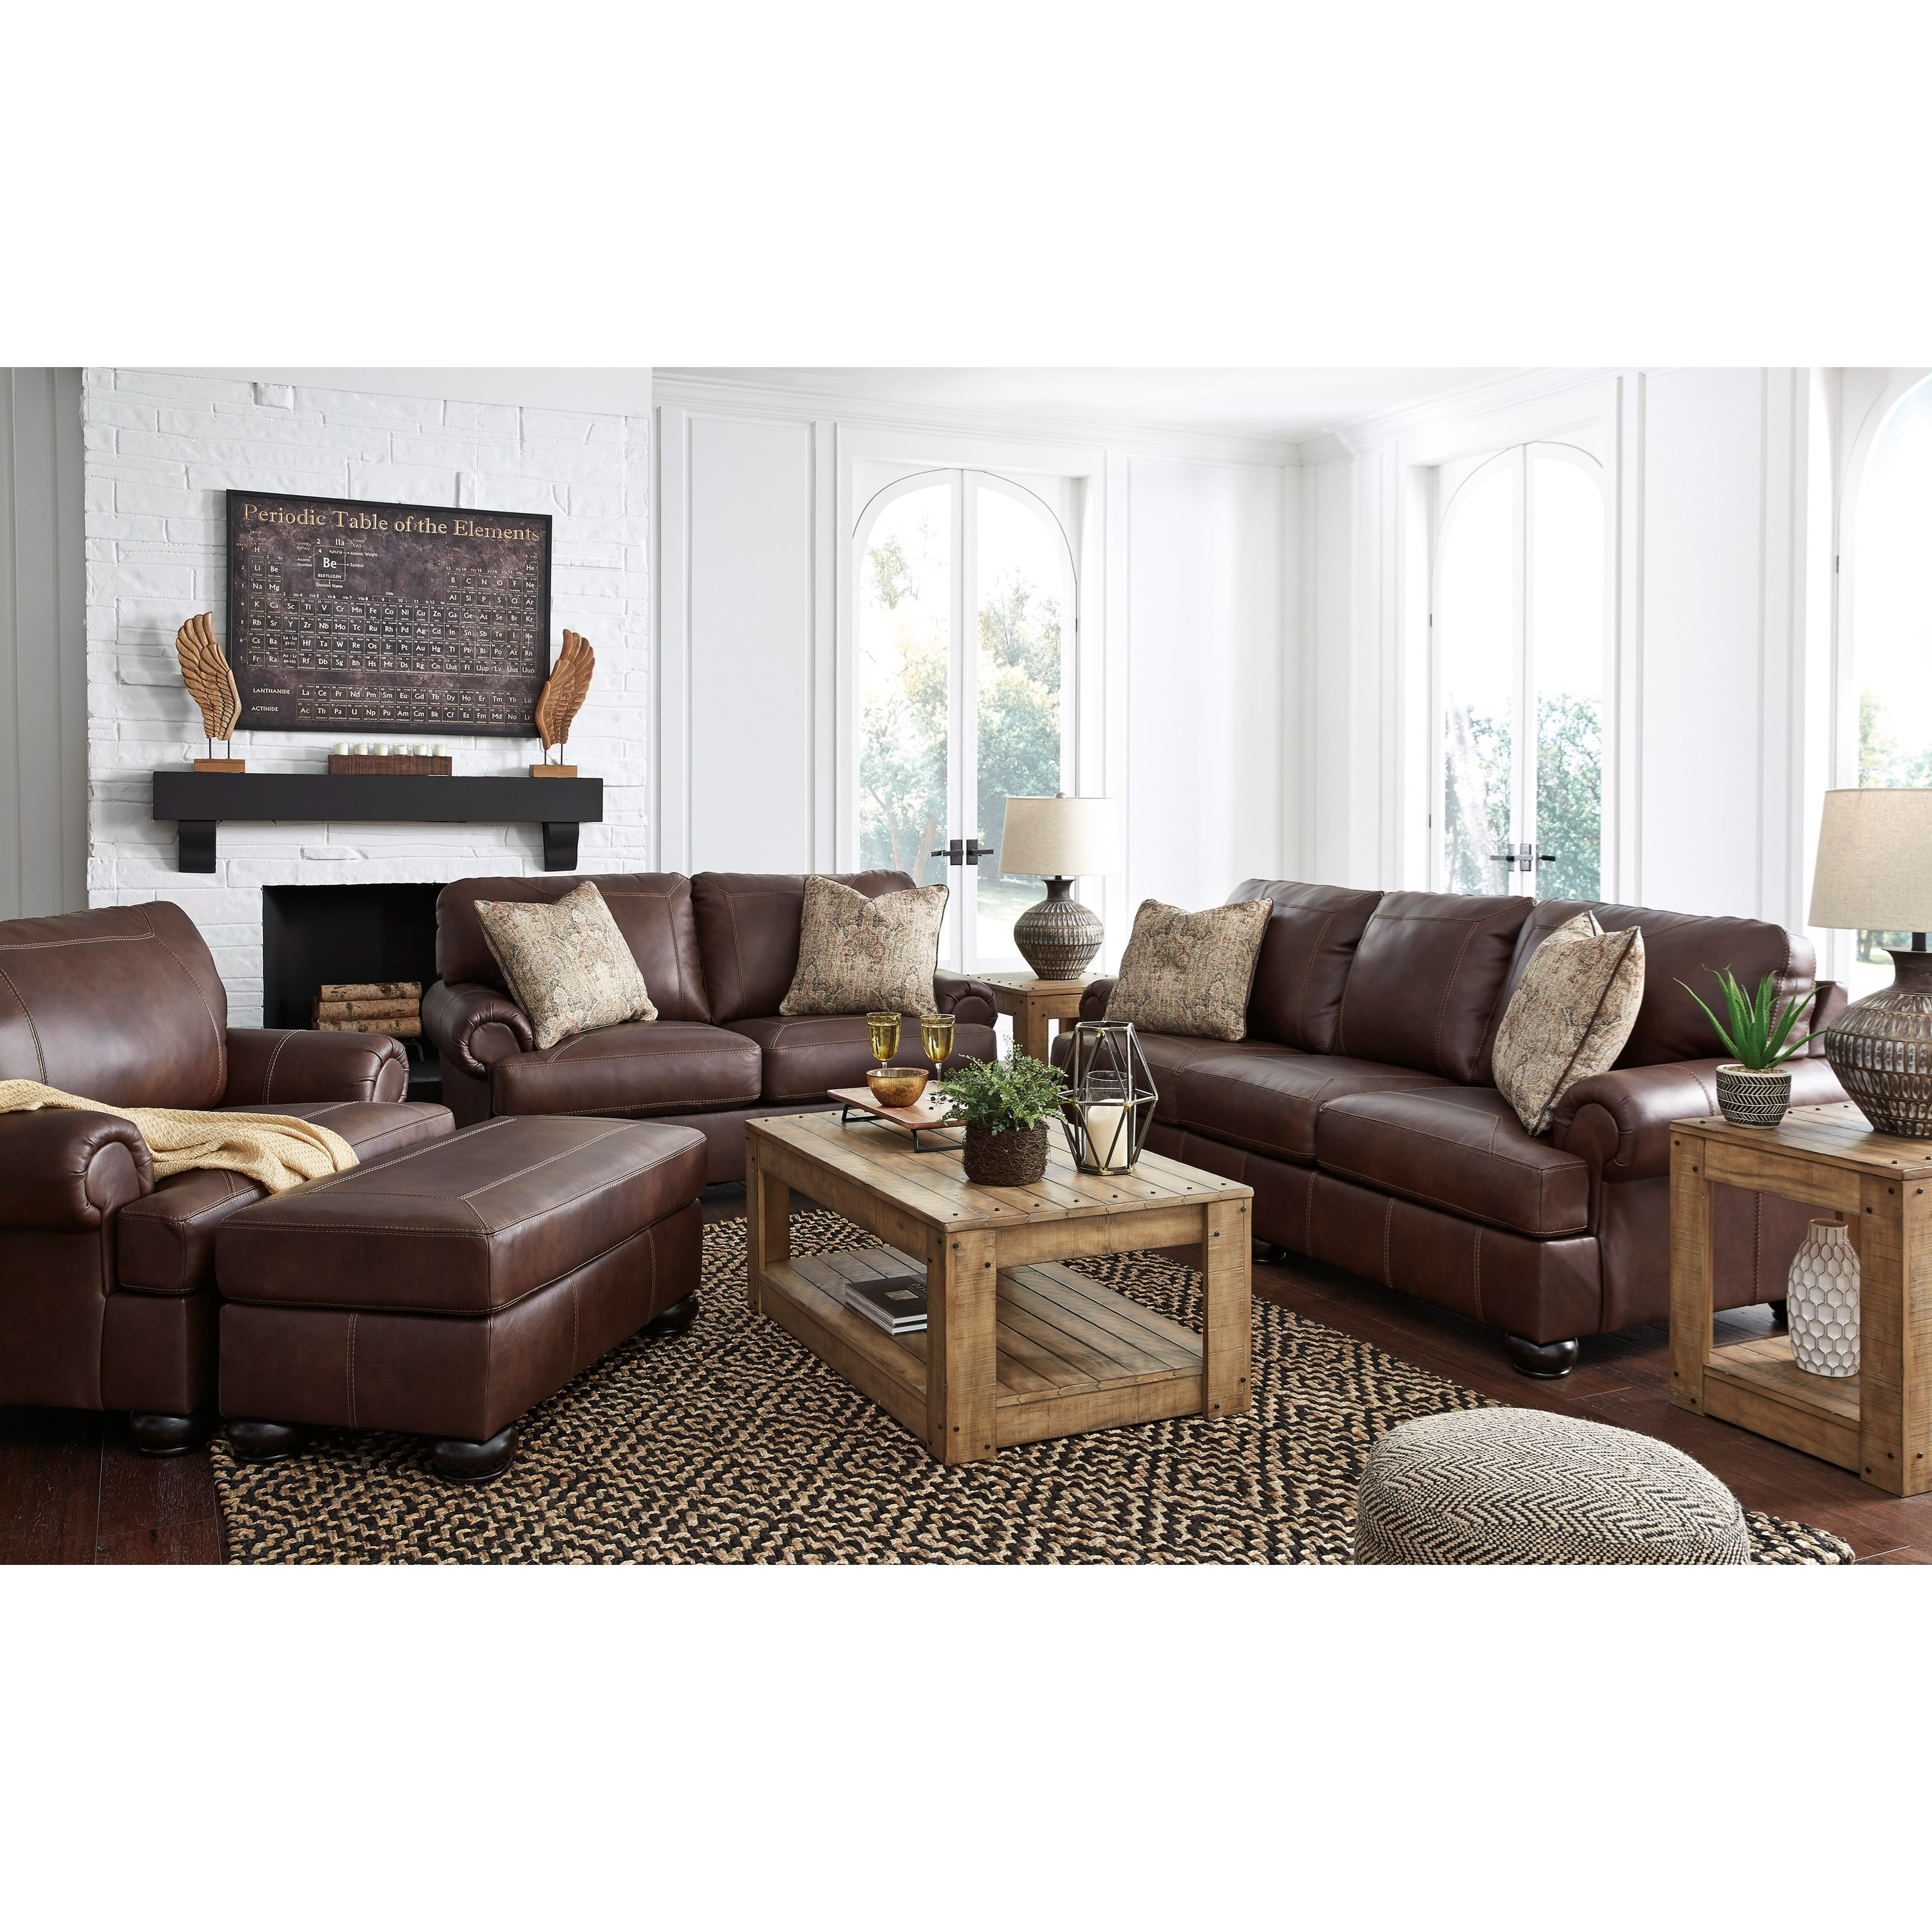 Bearmerton Living Room Group by Signature Design by Ashley at Household Furniture